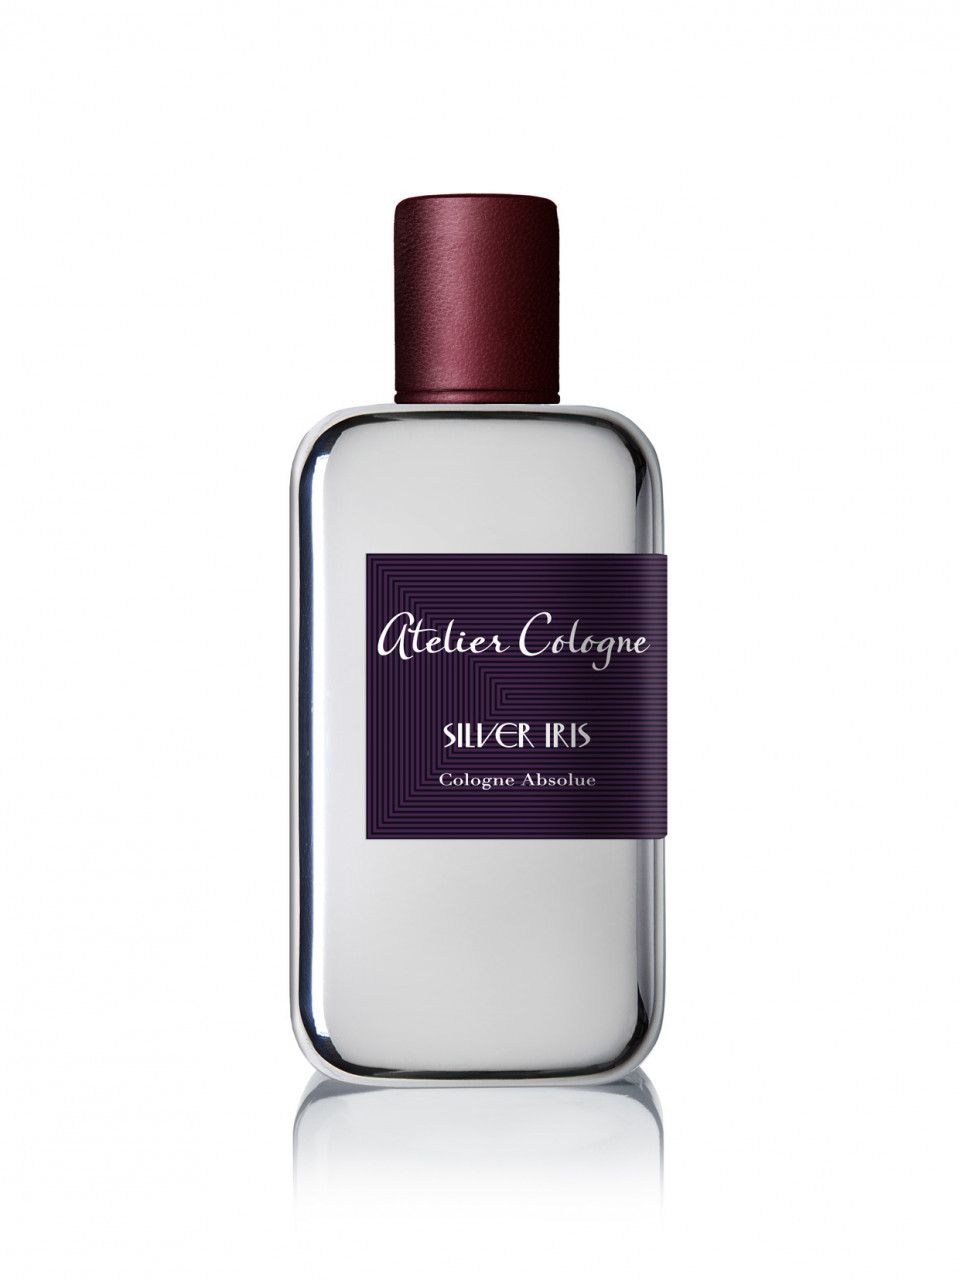 atelier-cologne-silver-iris-cologne-absolue-duft